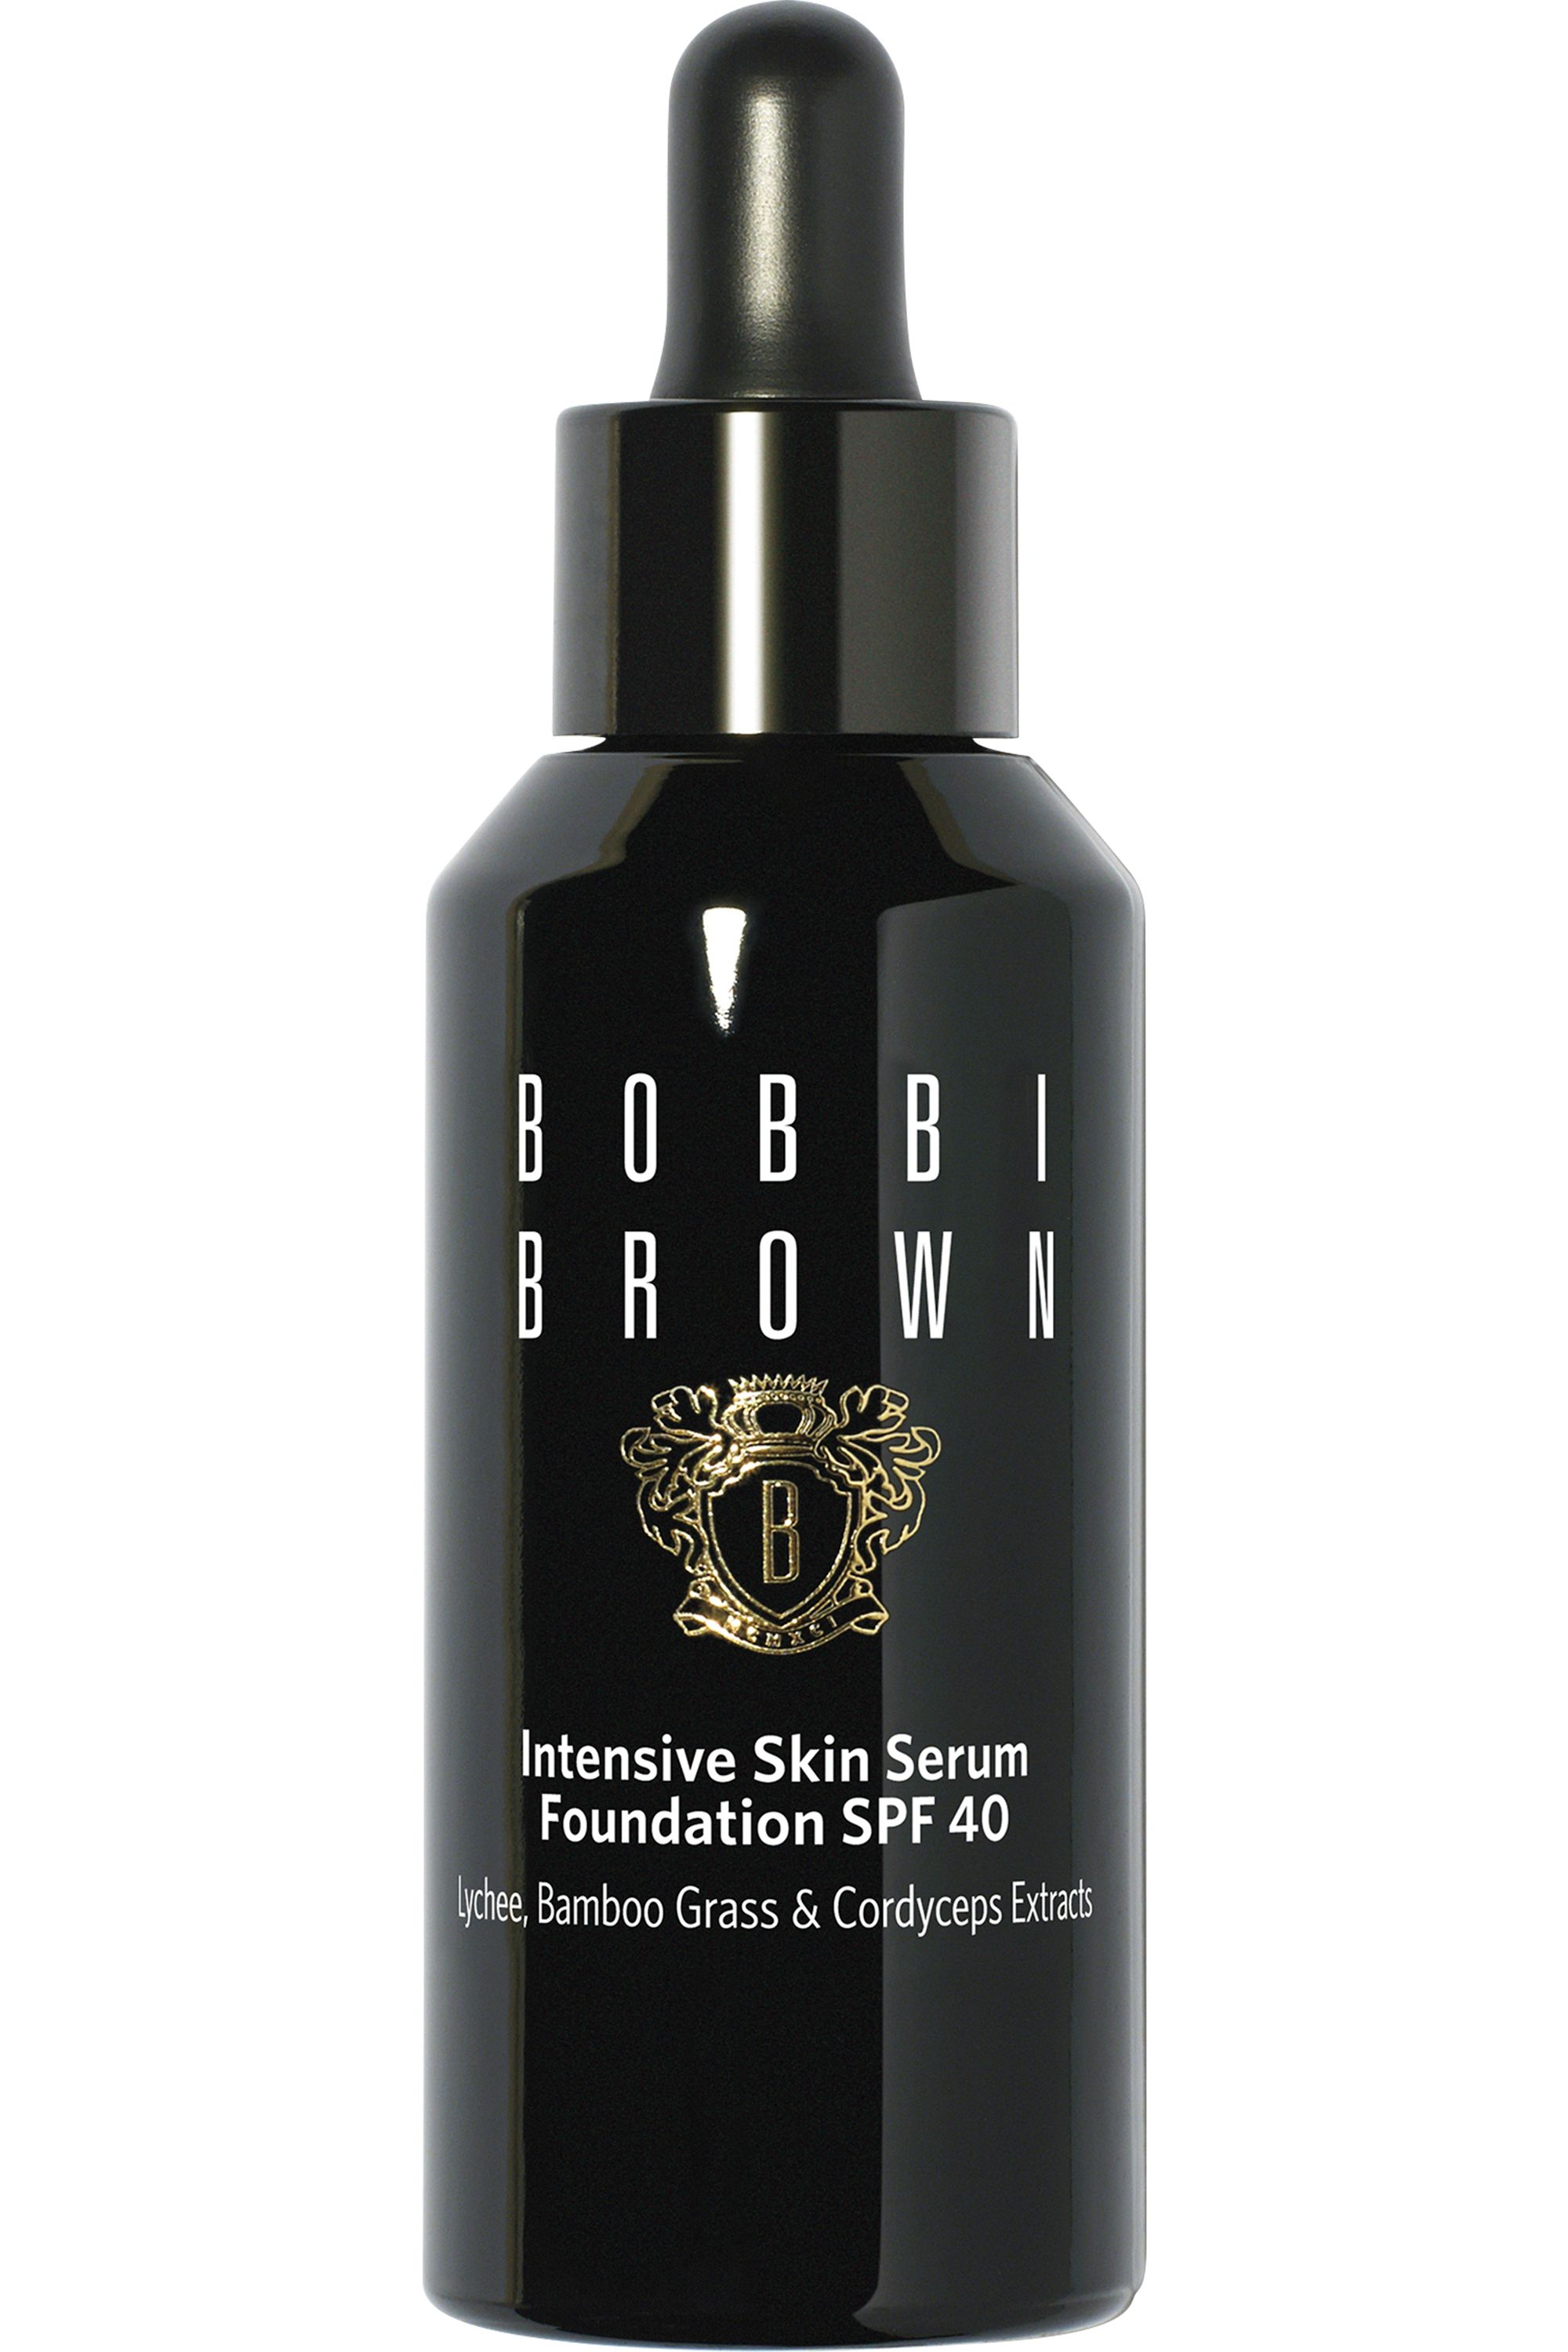 Blissim : Bobbi Brown - Fond de teint Intensive Skin Serum - Honey